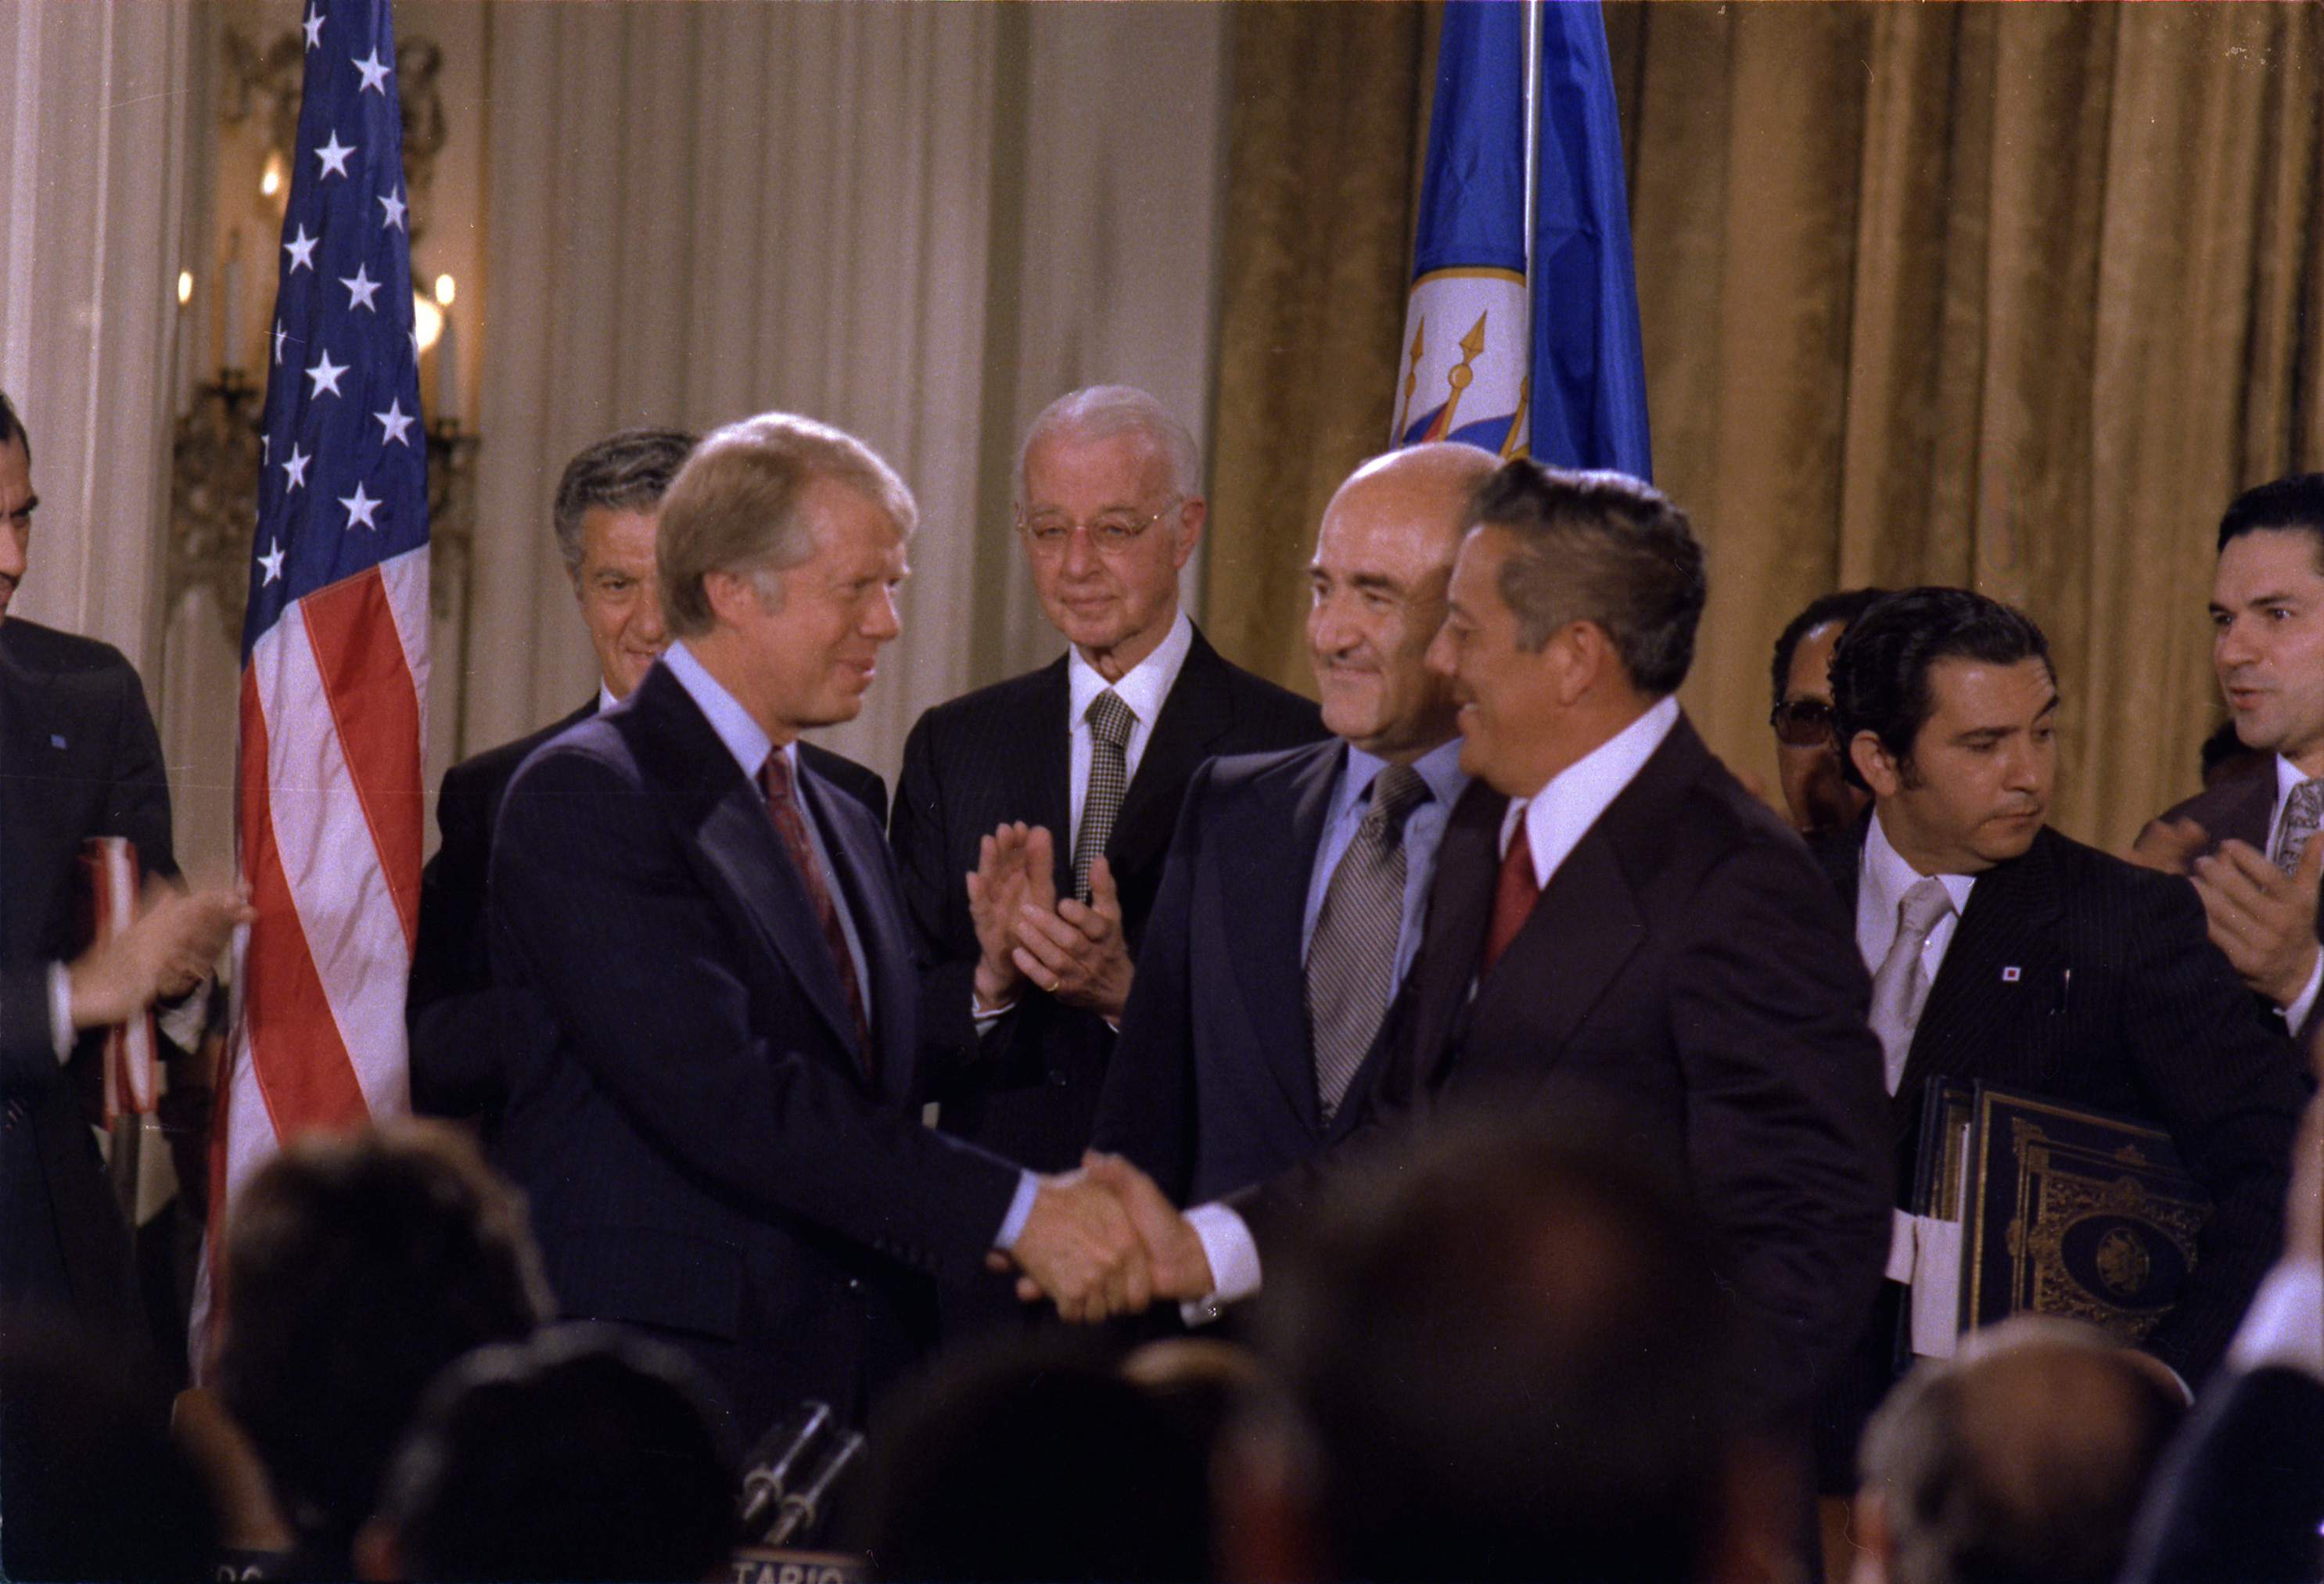 Jimmy Carter and General Omar Torrijos signing the Panama Canal Treaty